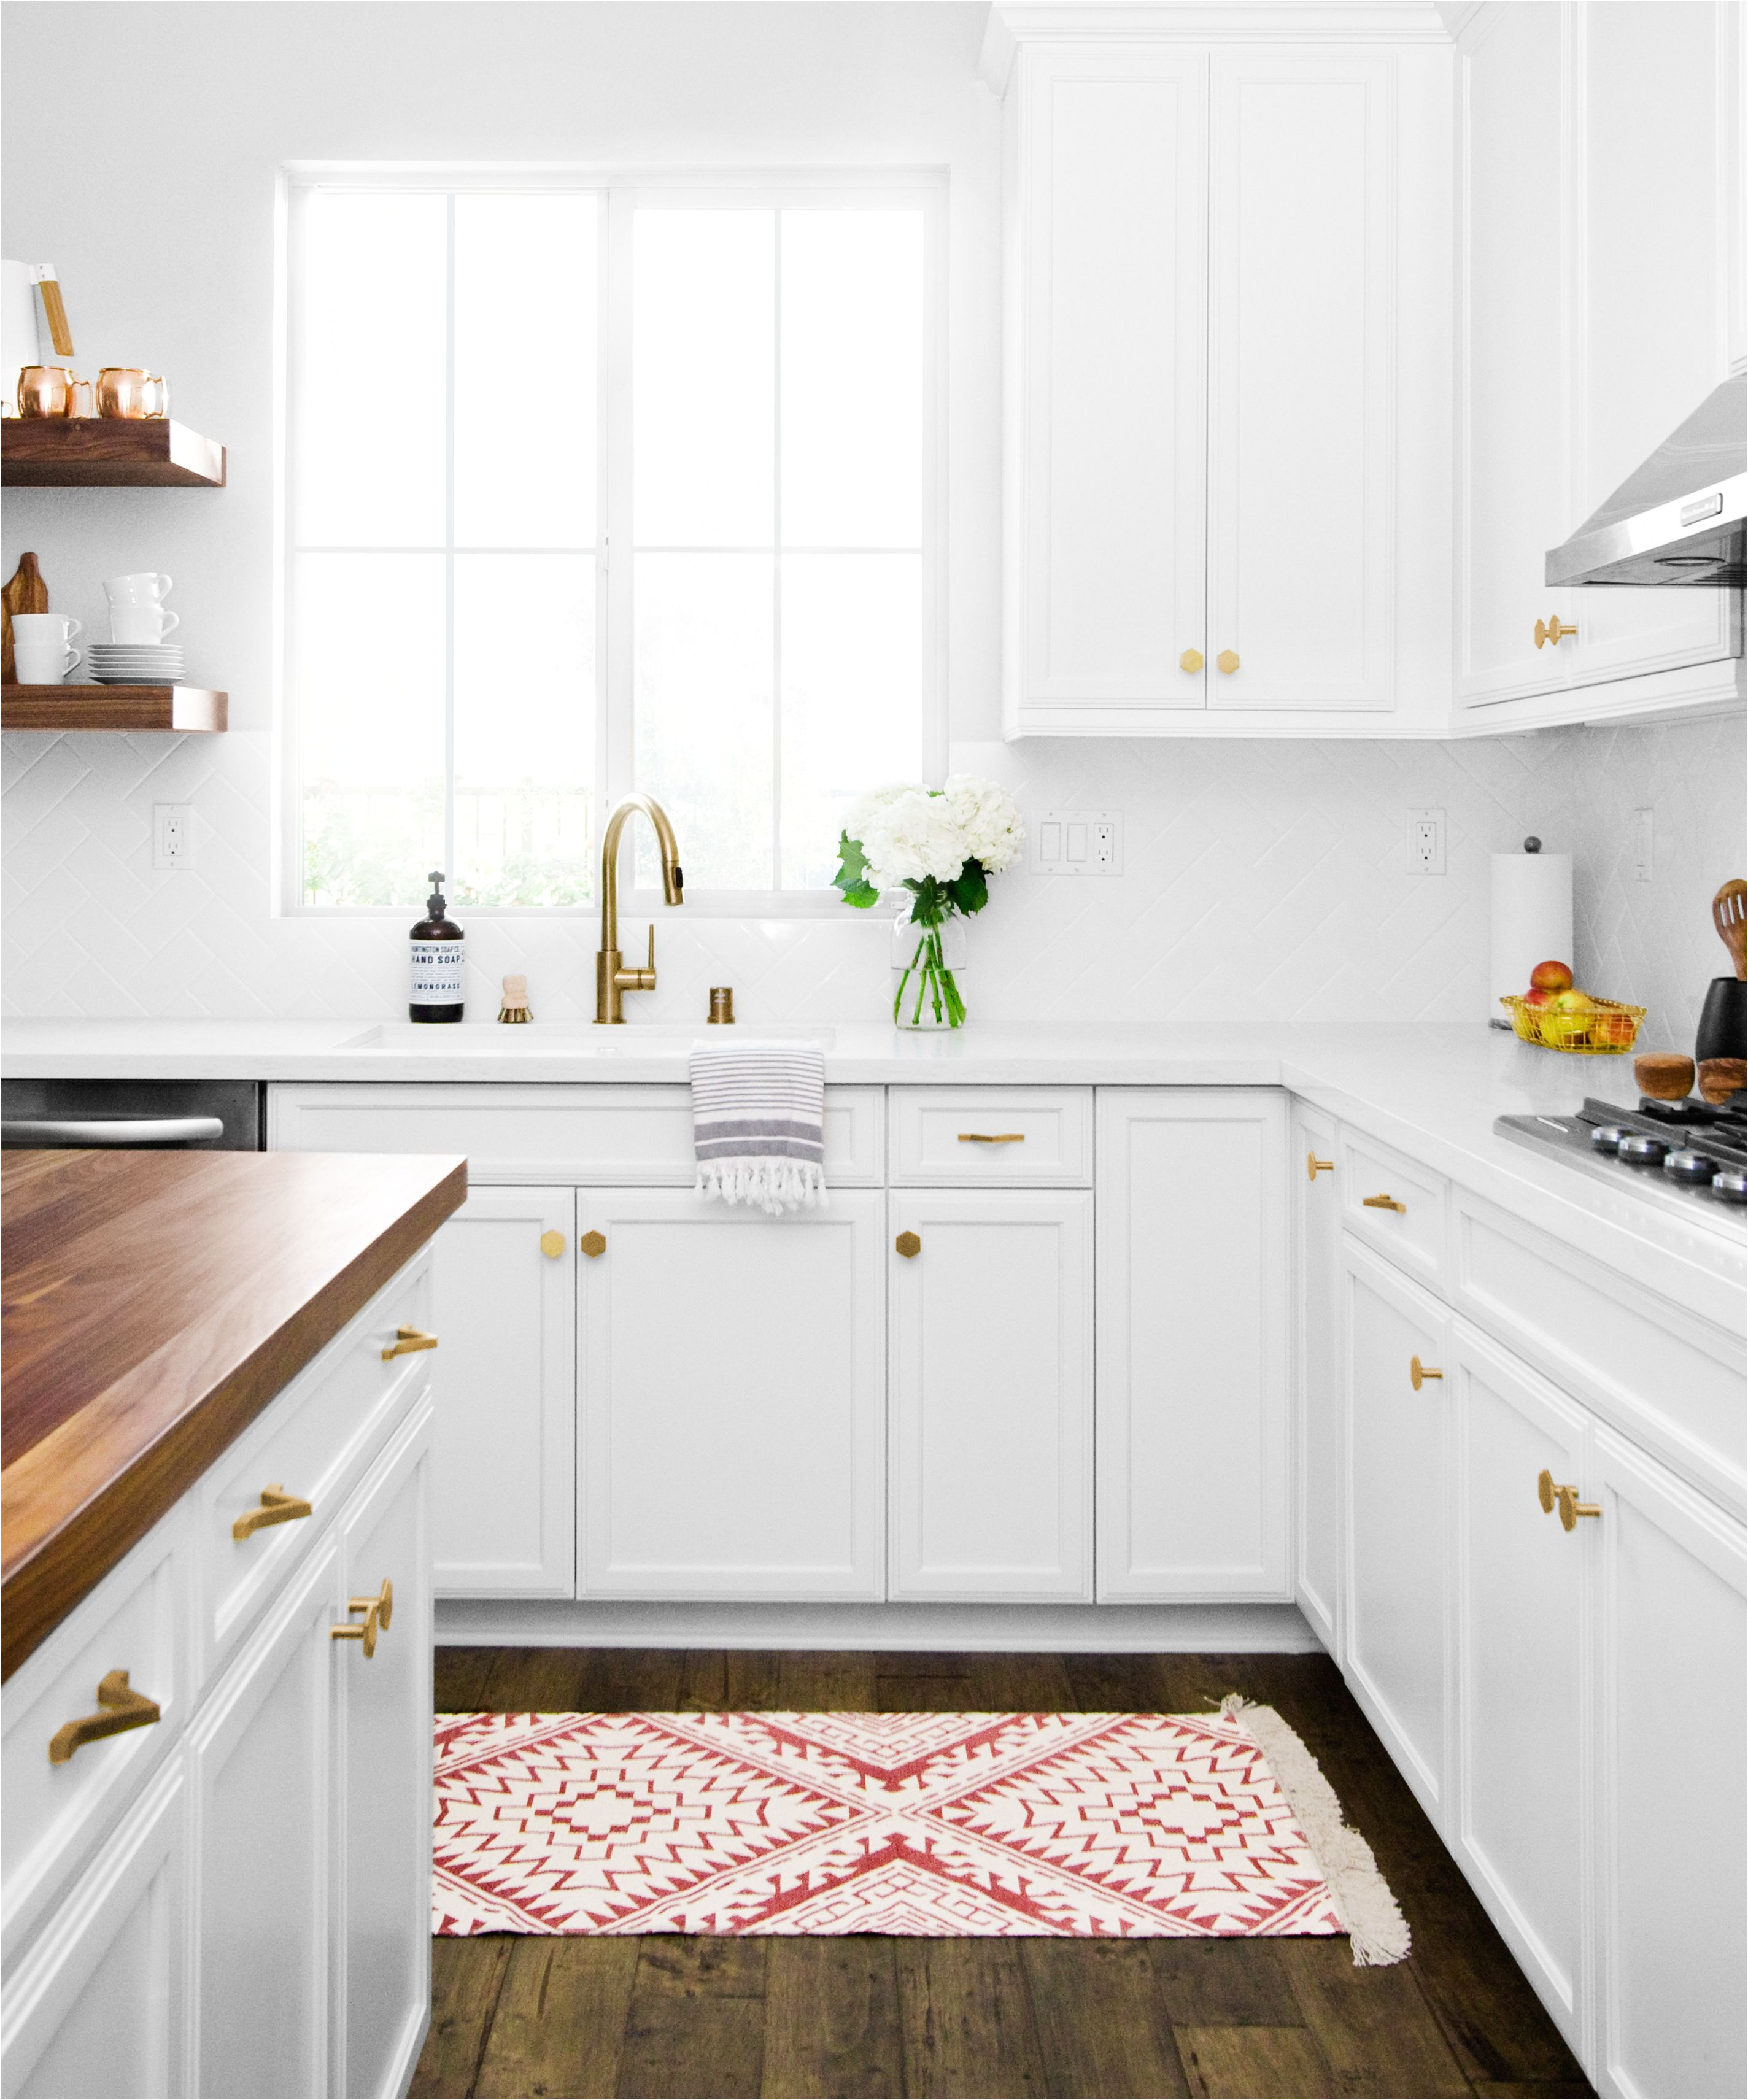 pugh project kitchen butcher block island floating shelves and gold accents